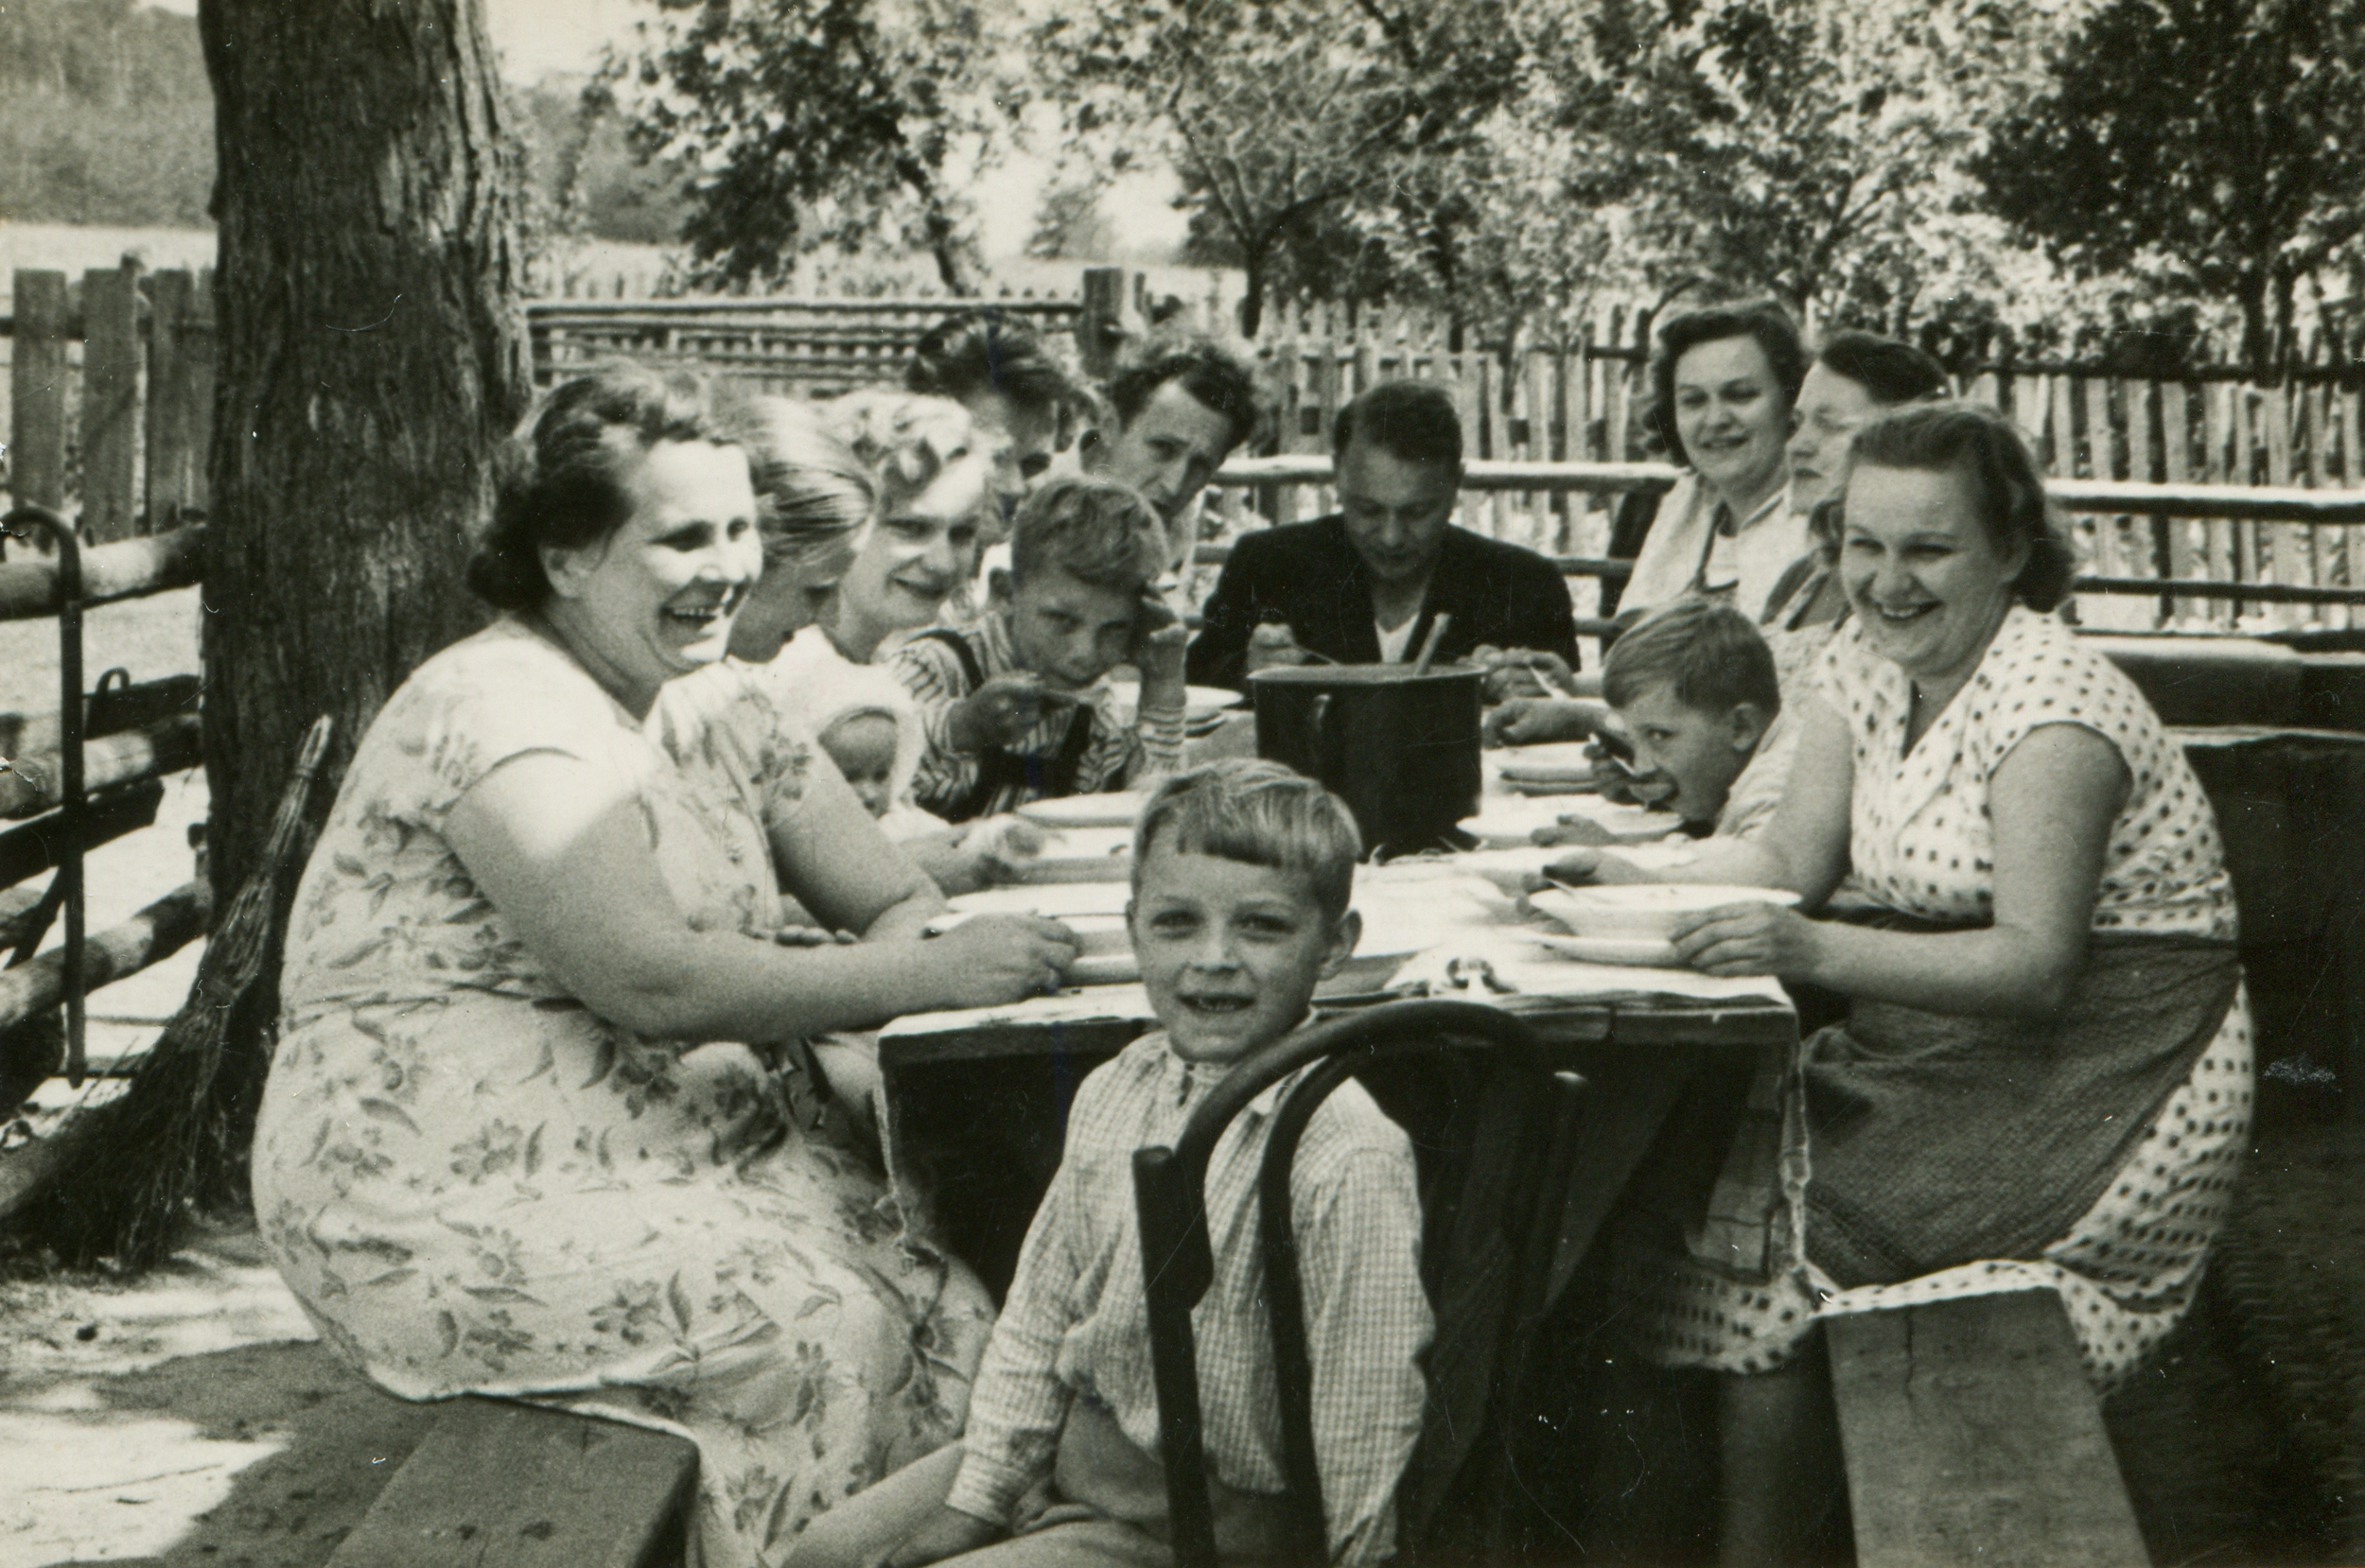 Old family photo, family sitting at table